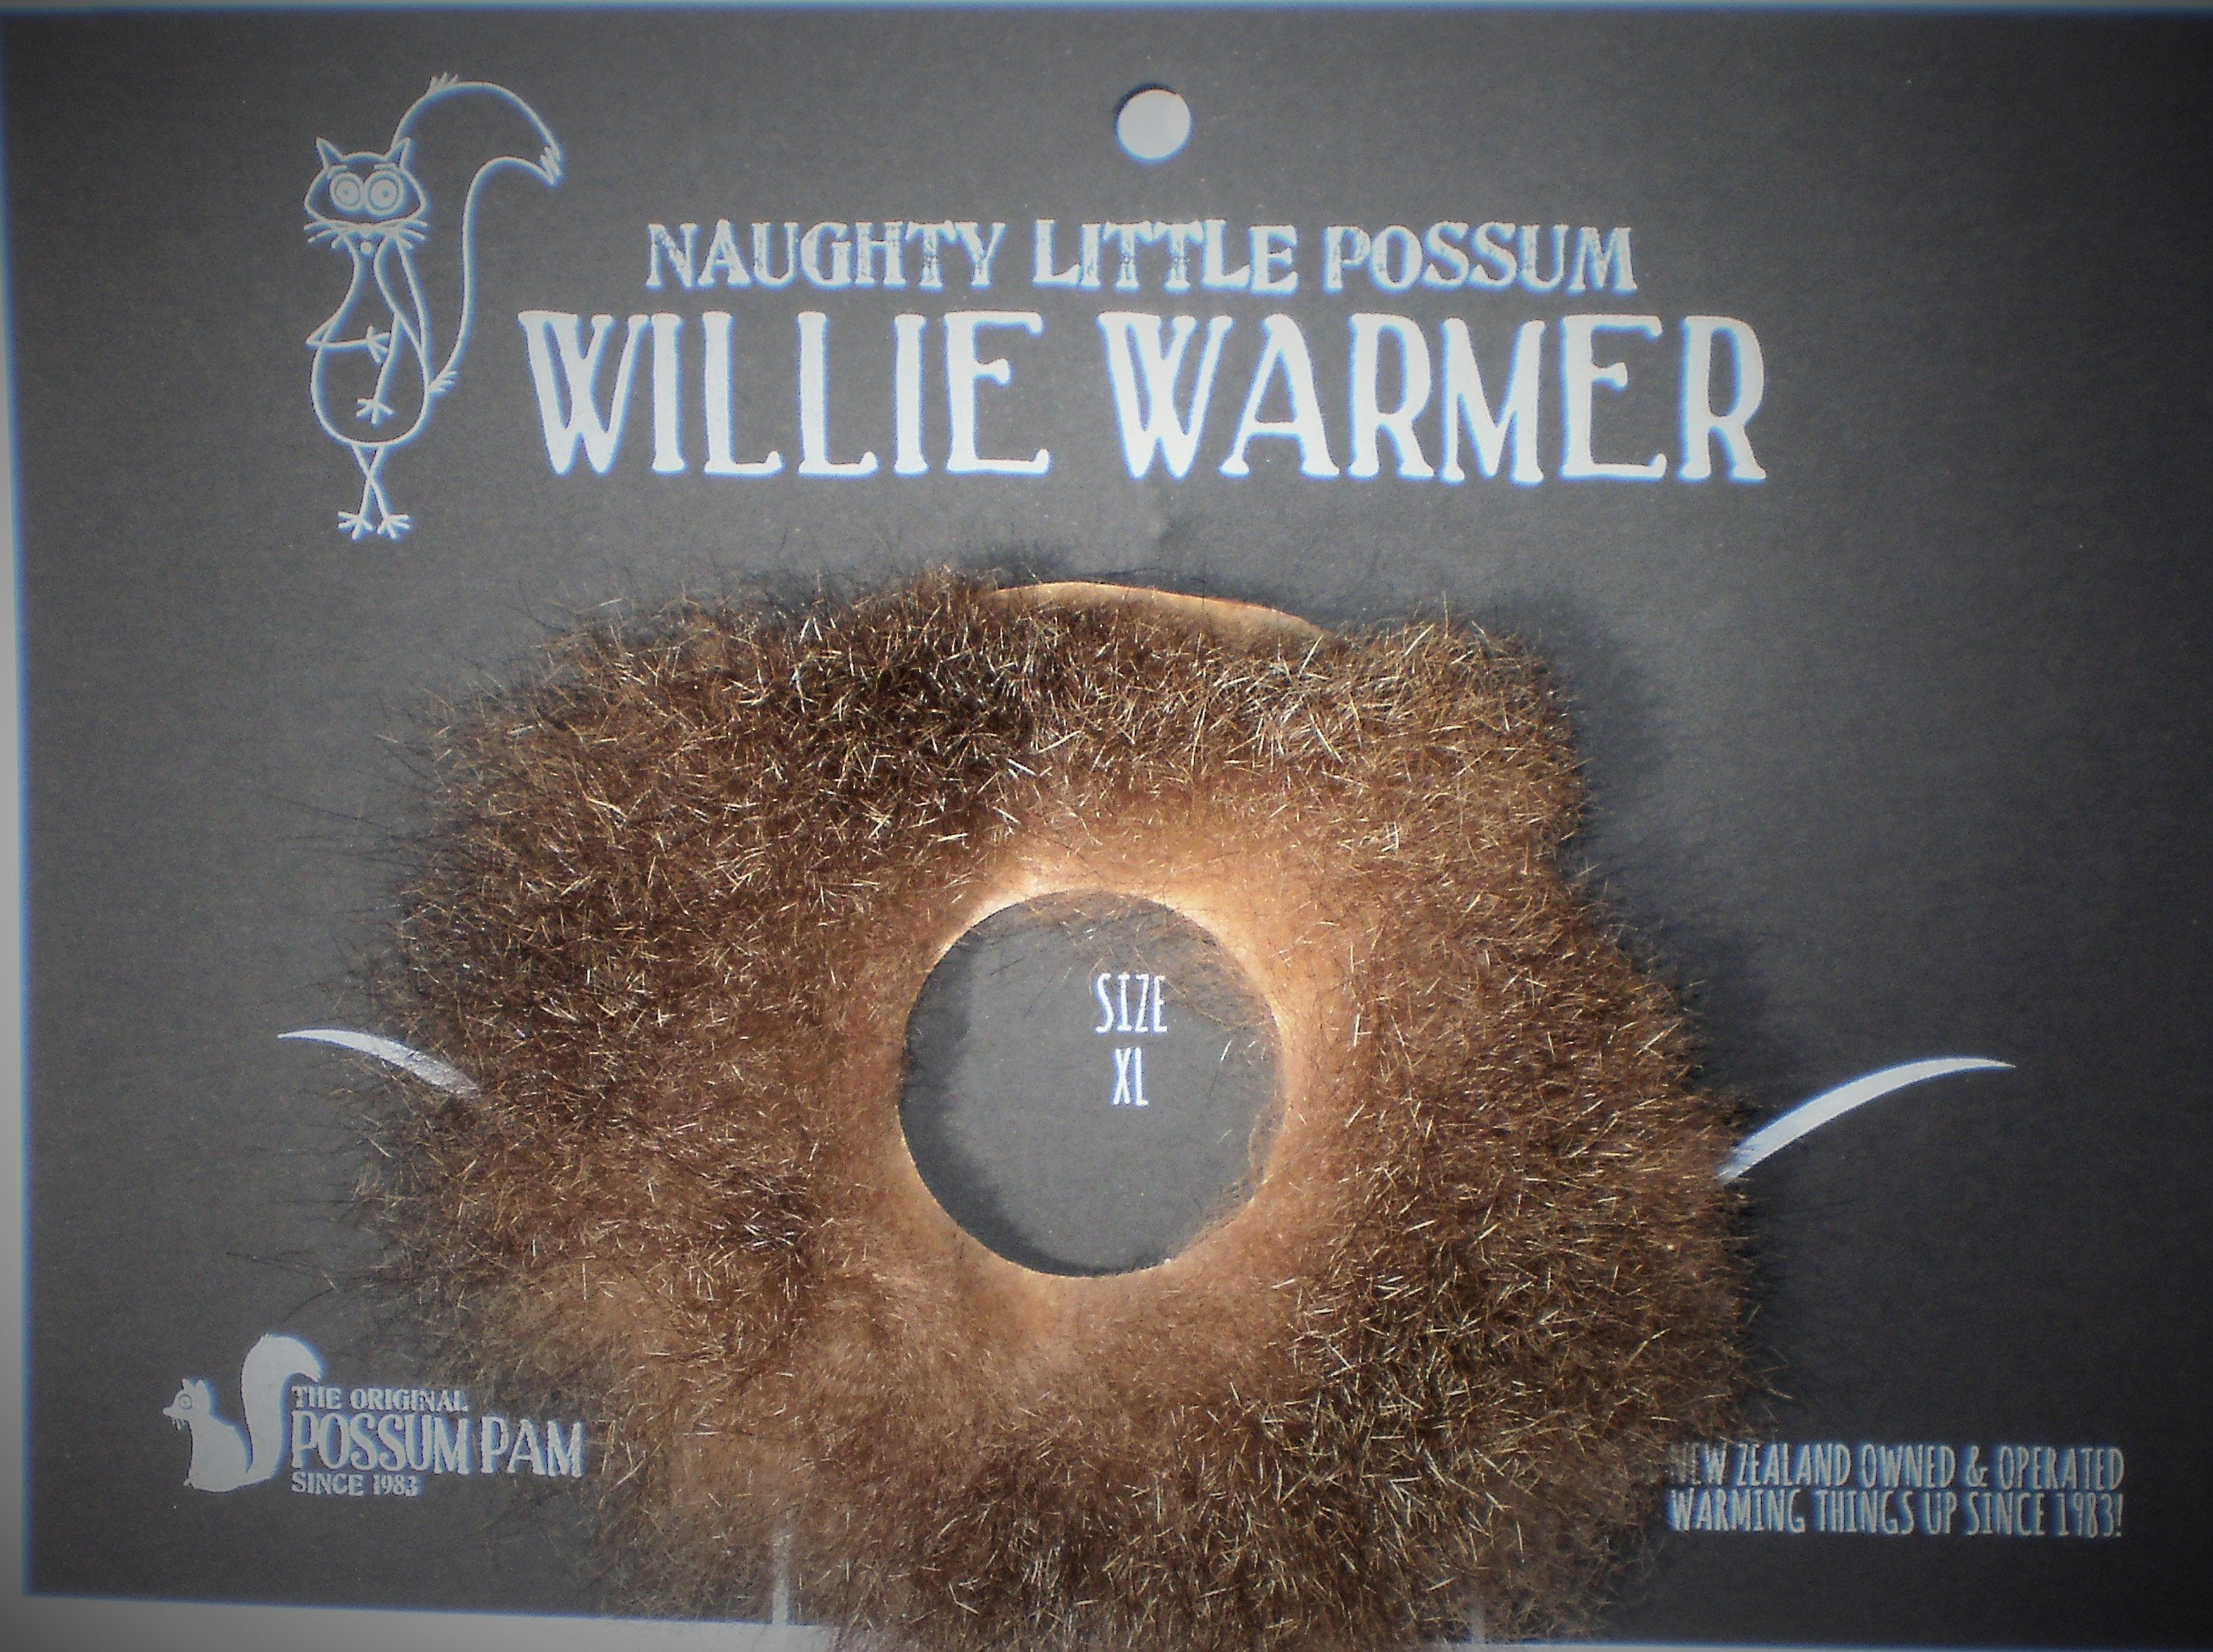 WILLIE WARMER - Woolshed Gallery